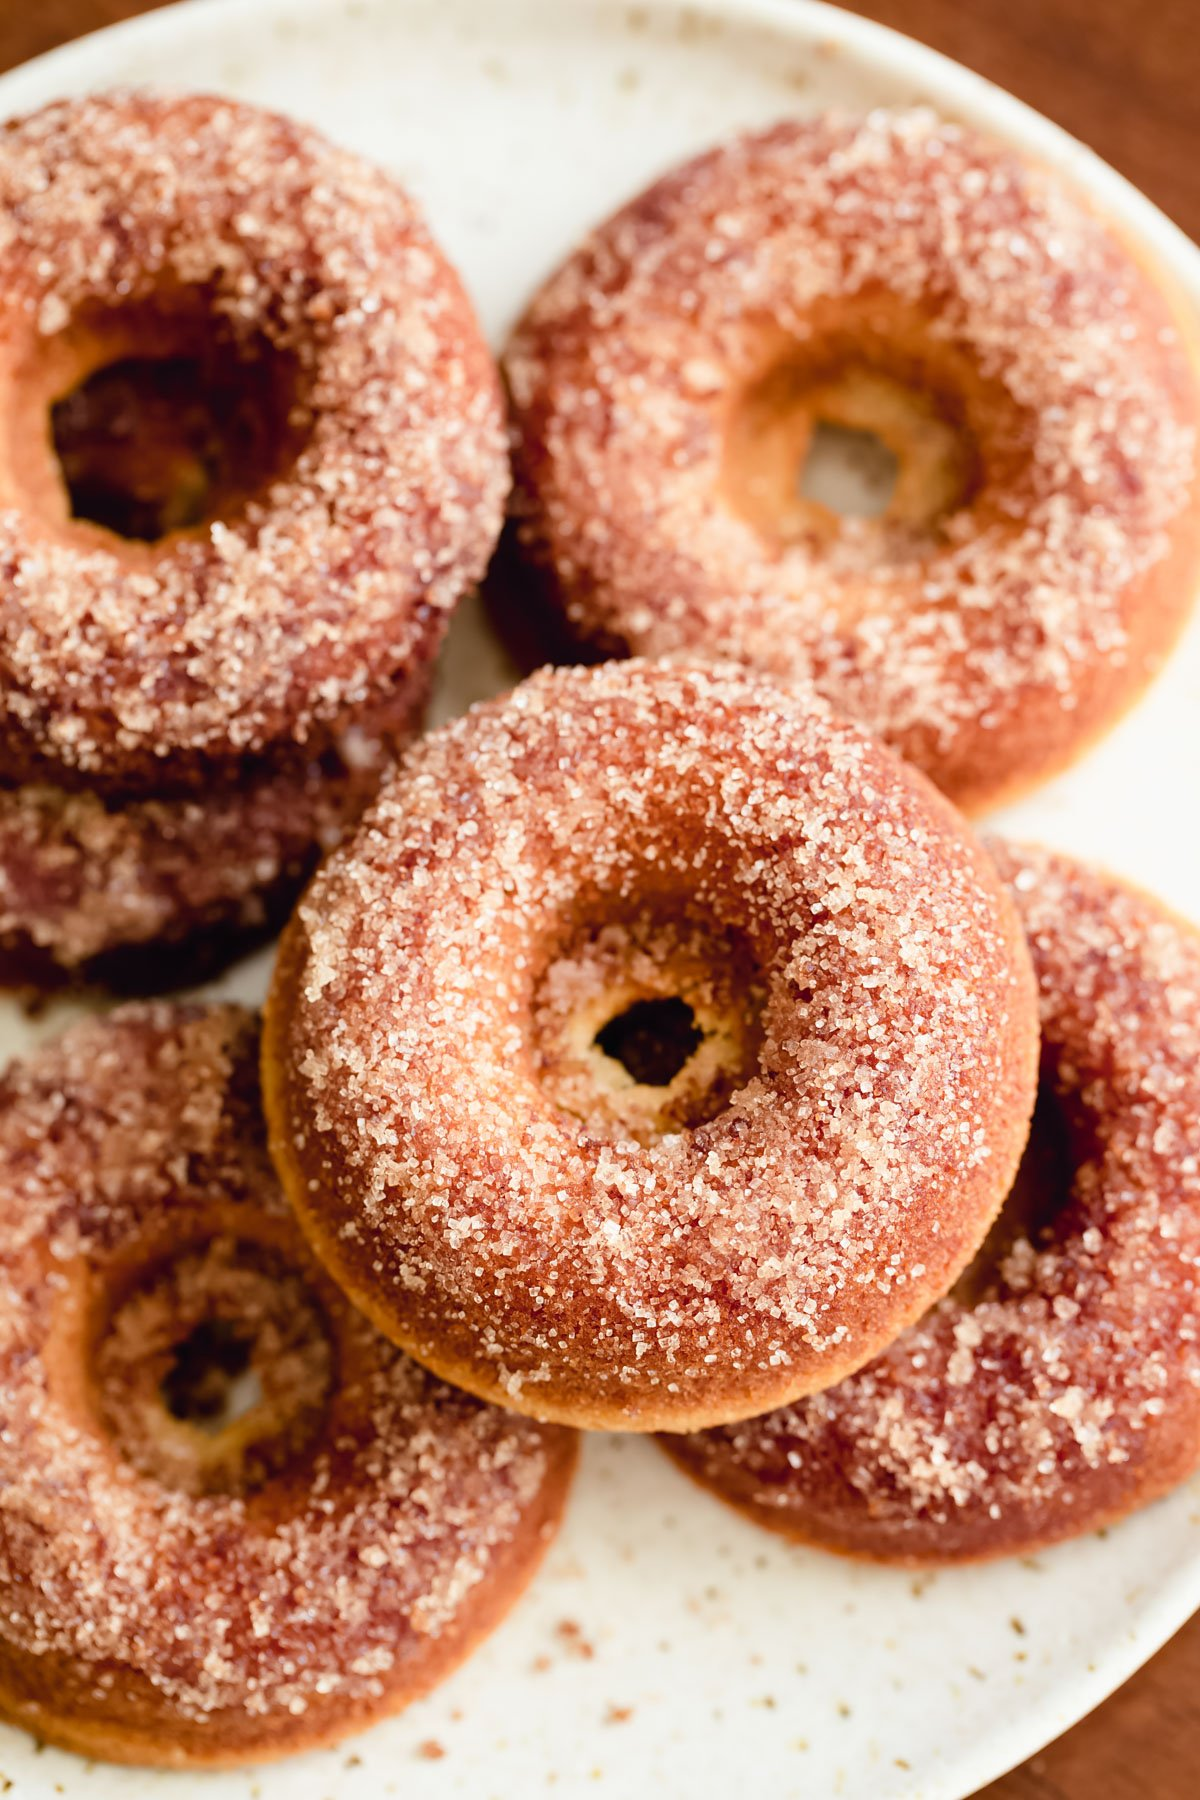 a plate of glutenfree vanilla donuts with coated with cinnamon sugar